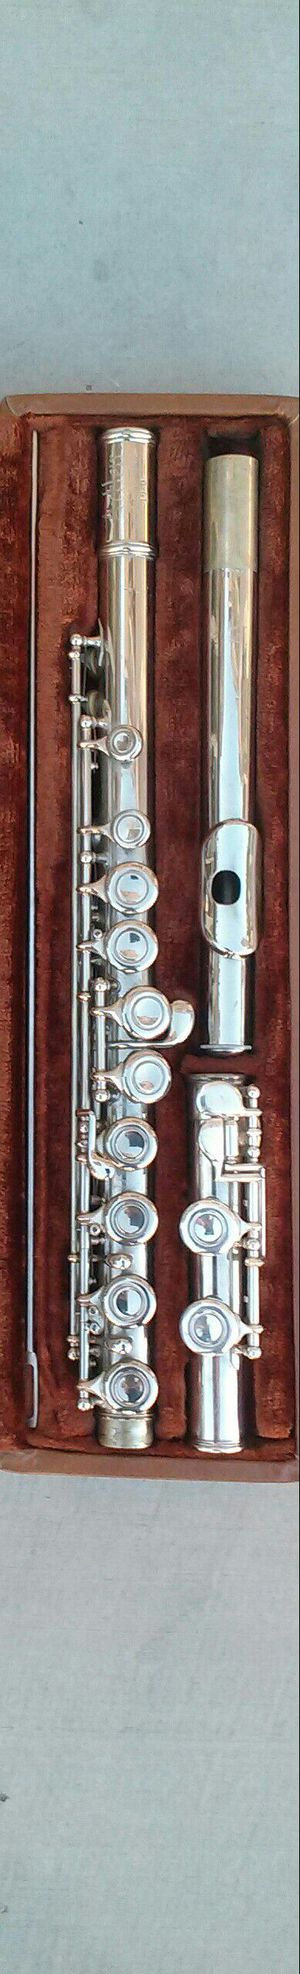 Flute and Case